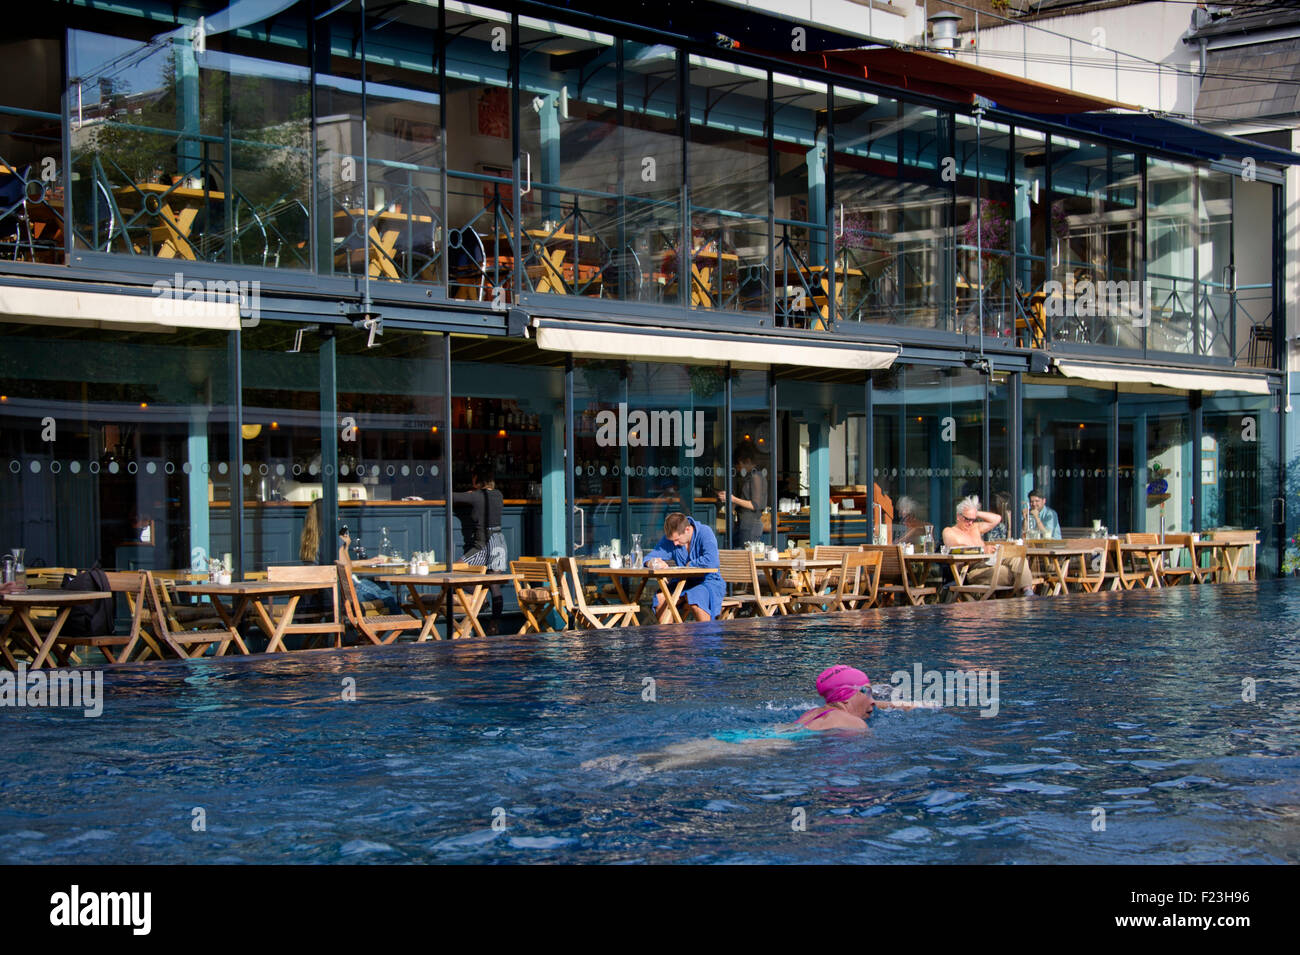 The Lido Spa Restaurant Clifton Bristol Which Includes A Stock Photo Royalty Free Image